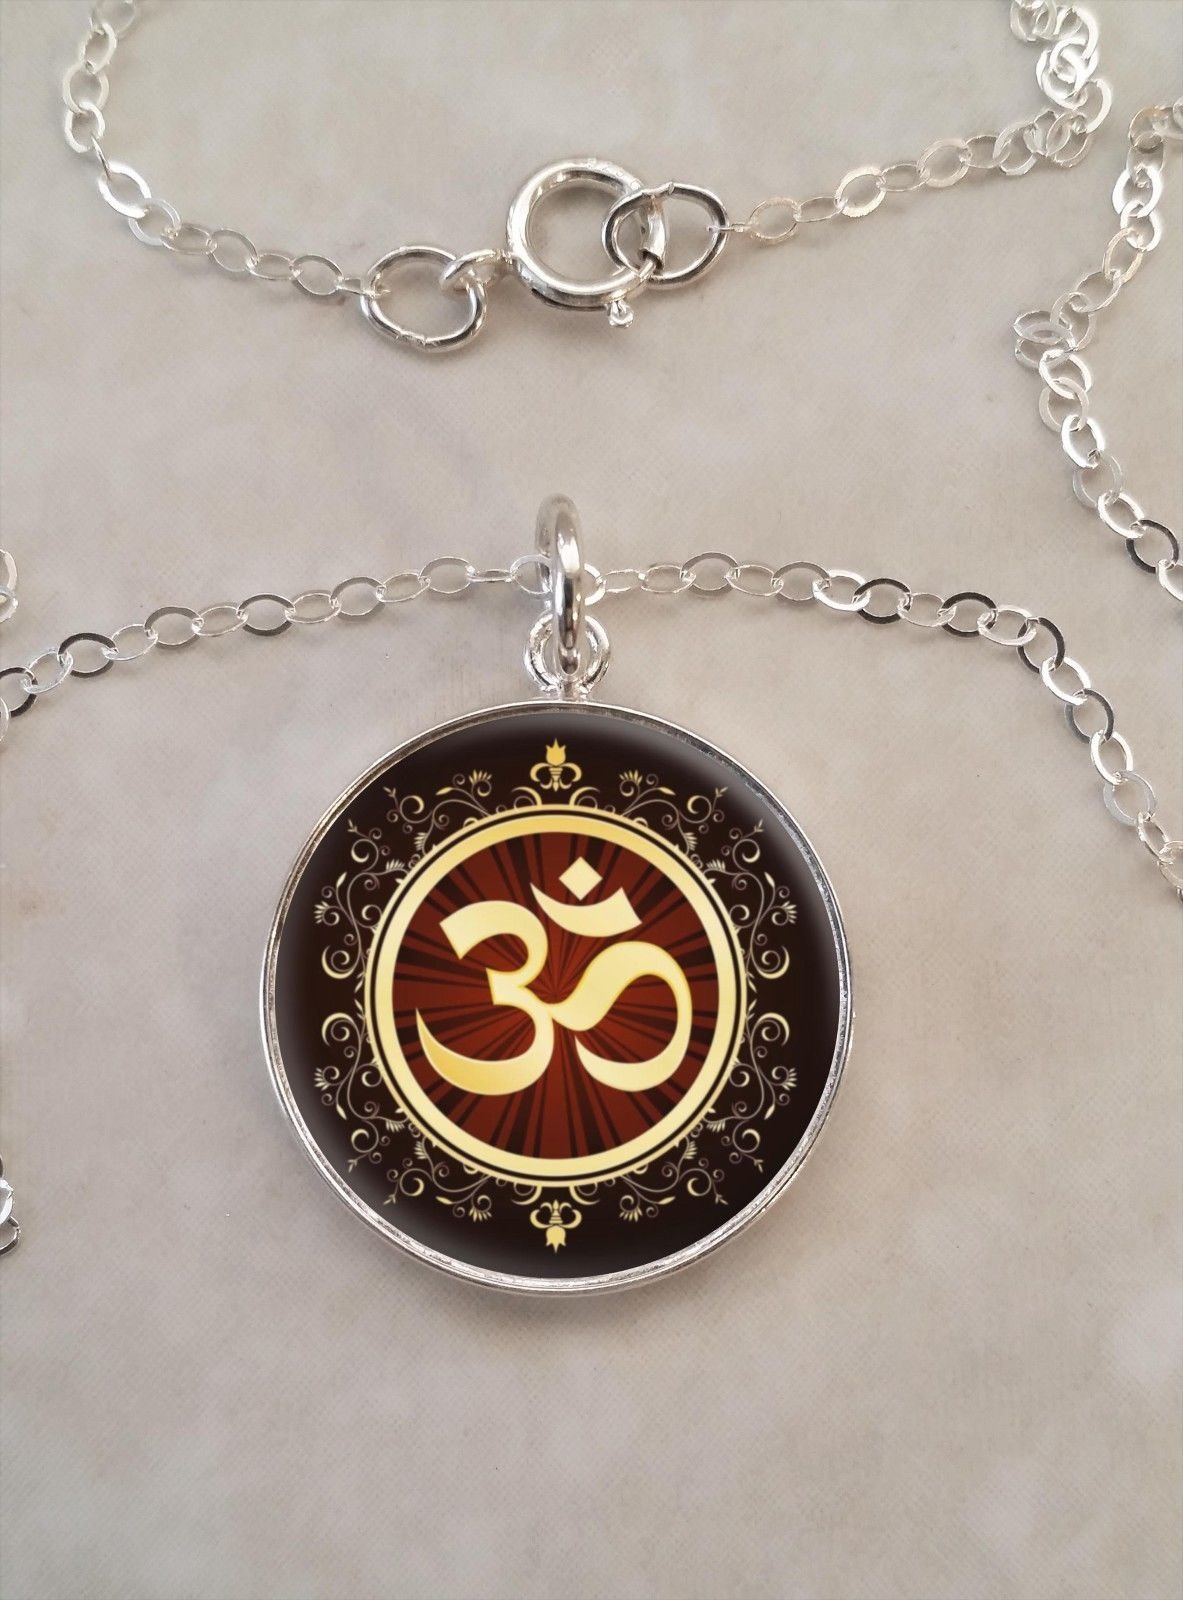 Primary image for Sterling Silver 925 Pendant Necklace Aum Om Meditation Hinduism Buddhism